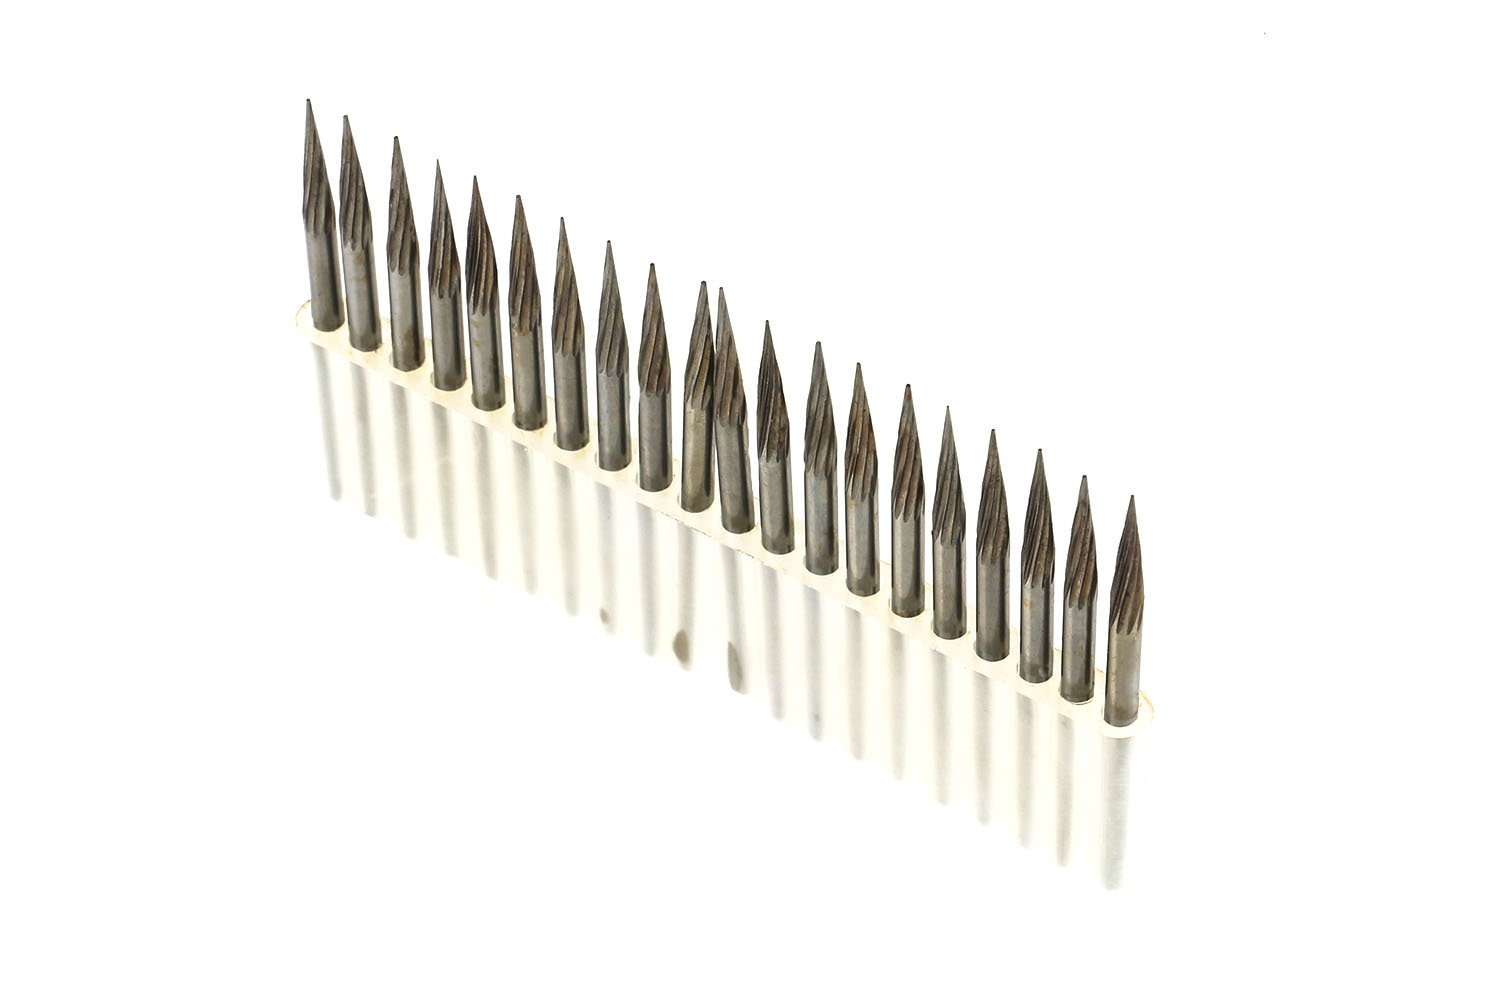 20Pcs Single Cut Conical Point Carbide Rotary Burr Bits Set 1/8'' Shank For Die Grinder